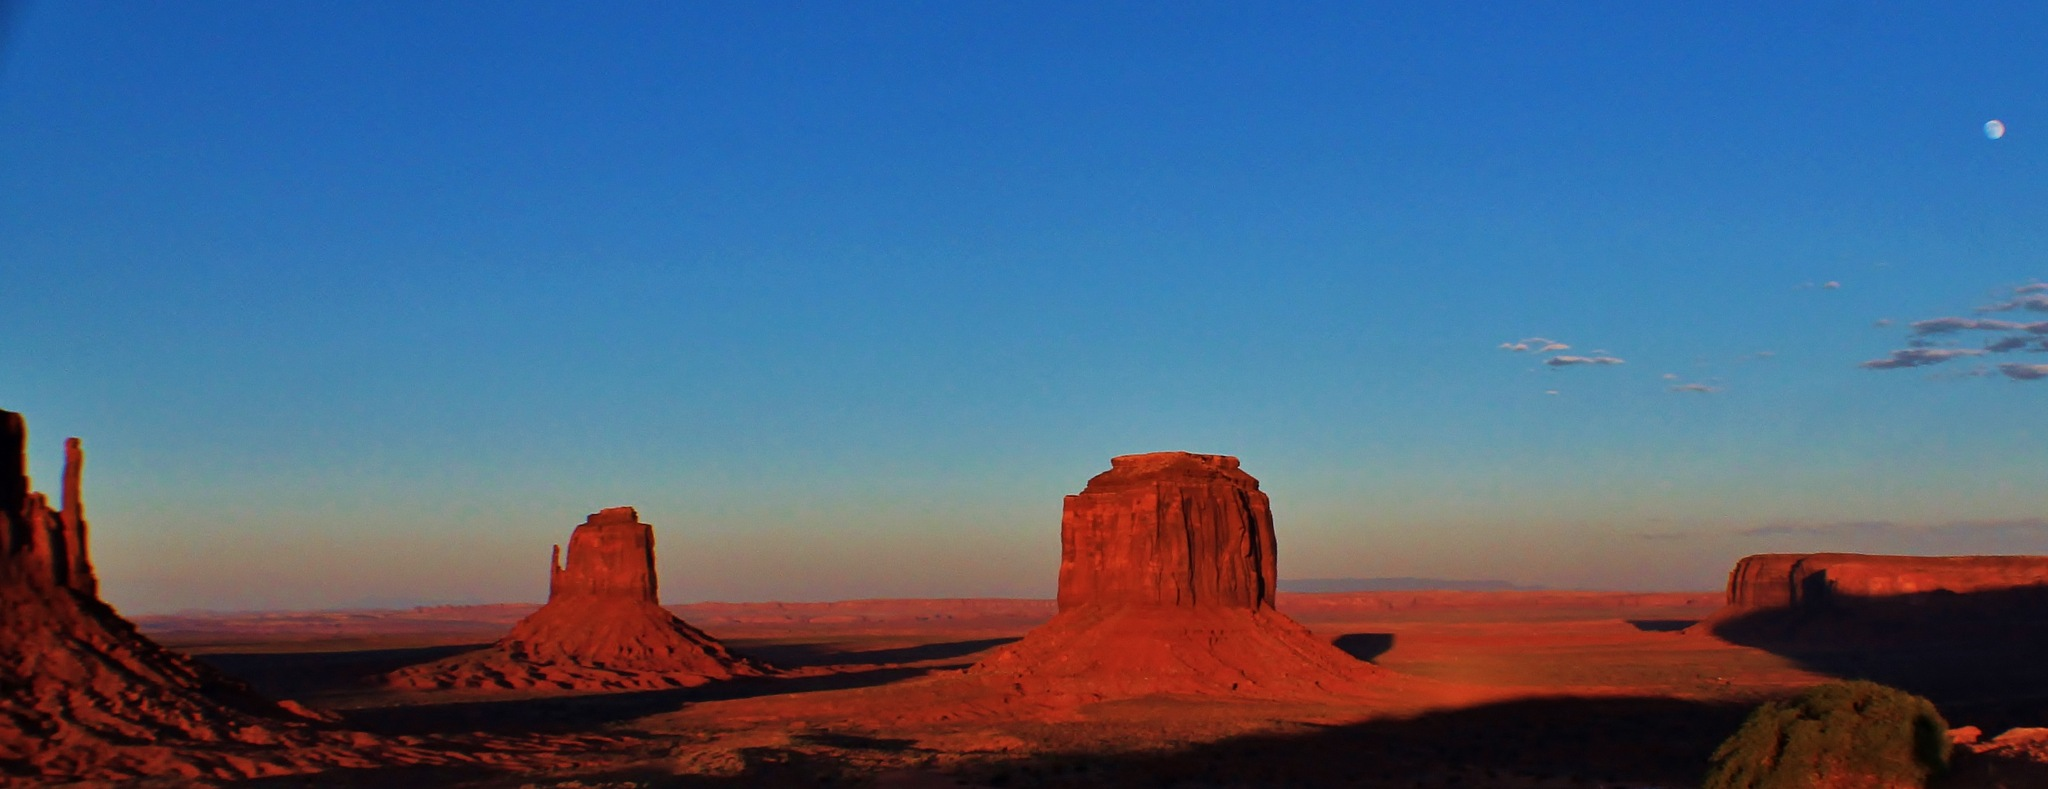 Moon over Monument Valley by yehaa_2001